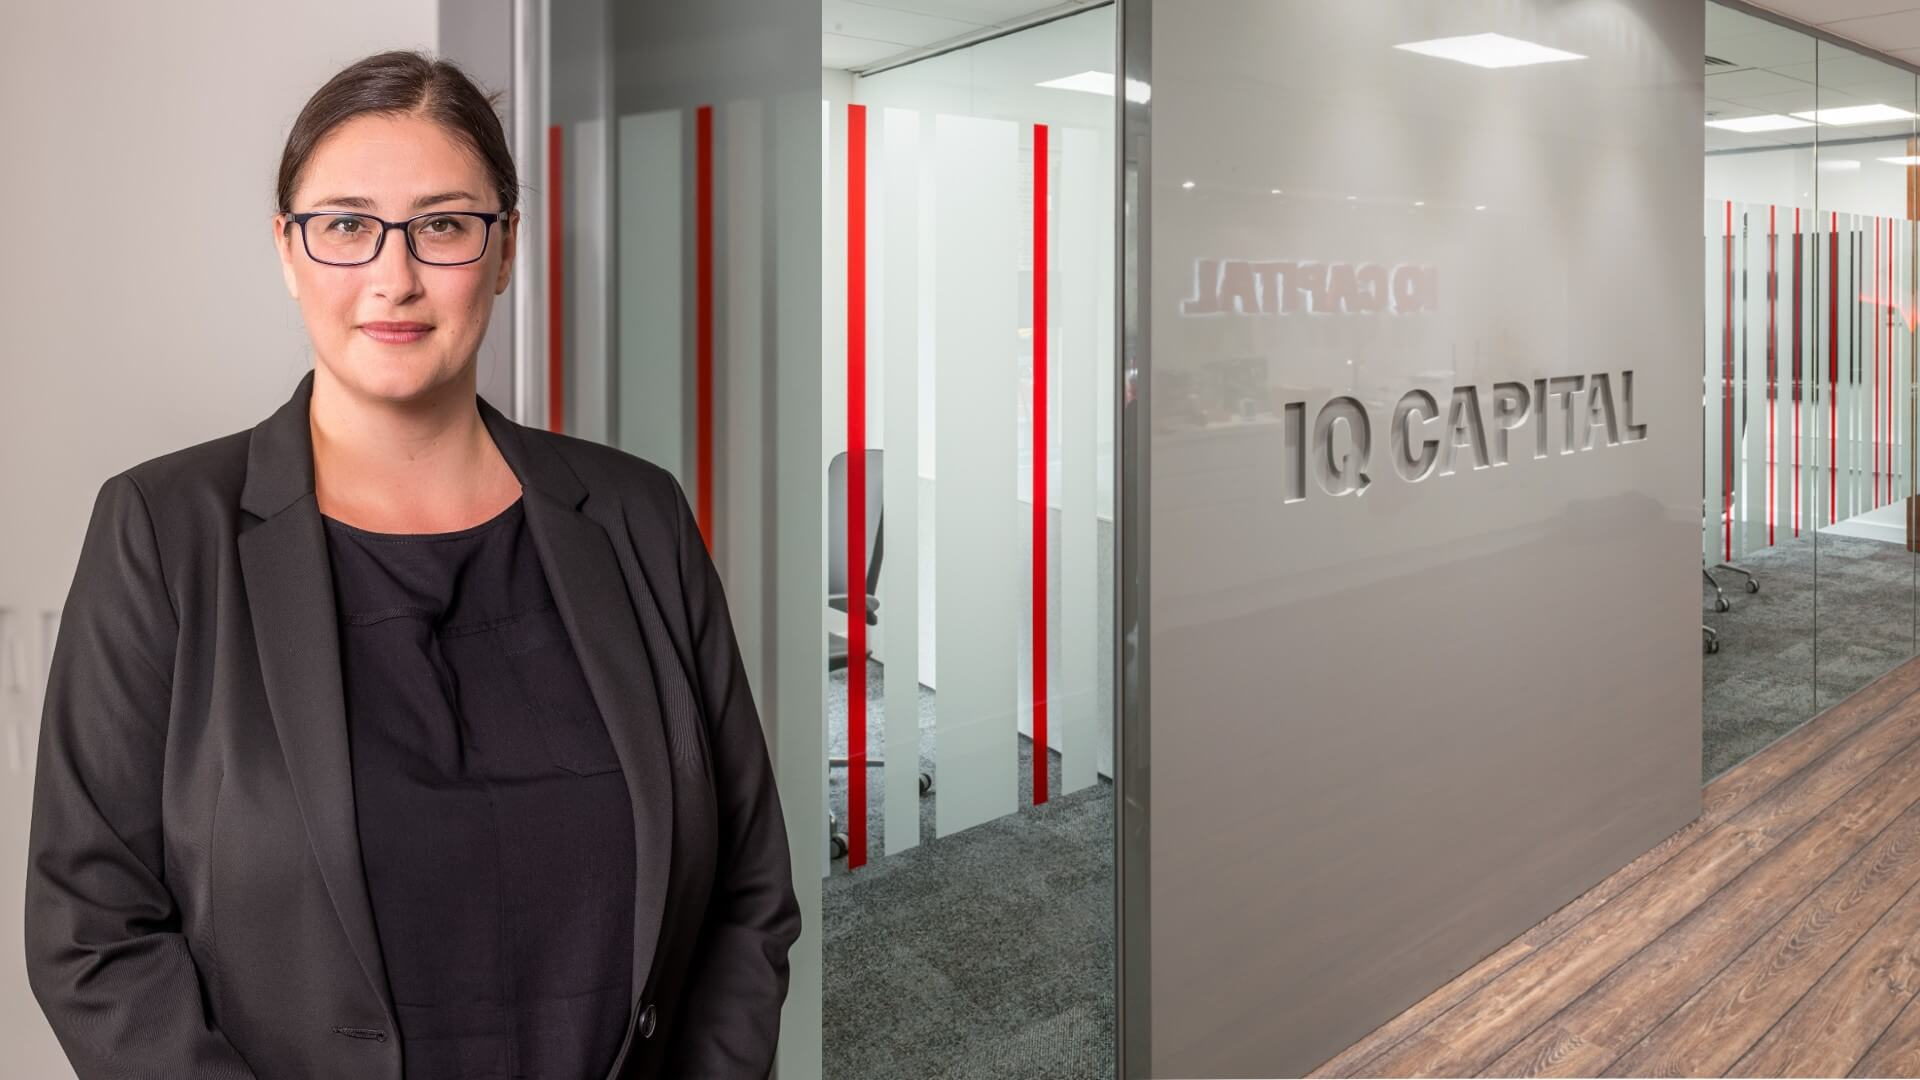 IQ Capital hires Pippa Pearce as General Counsel